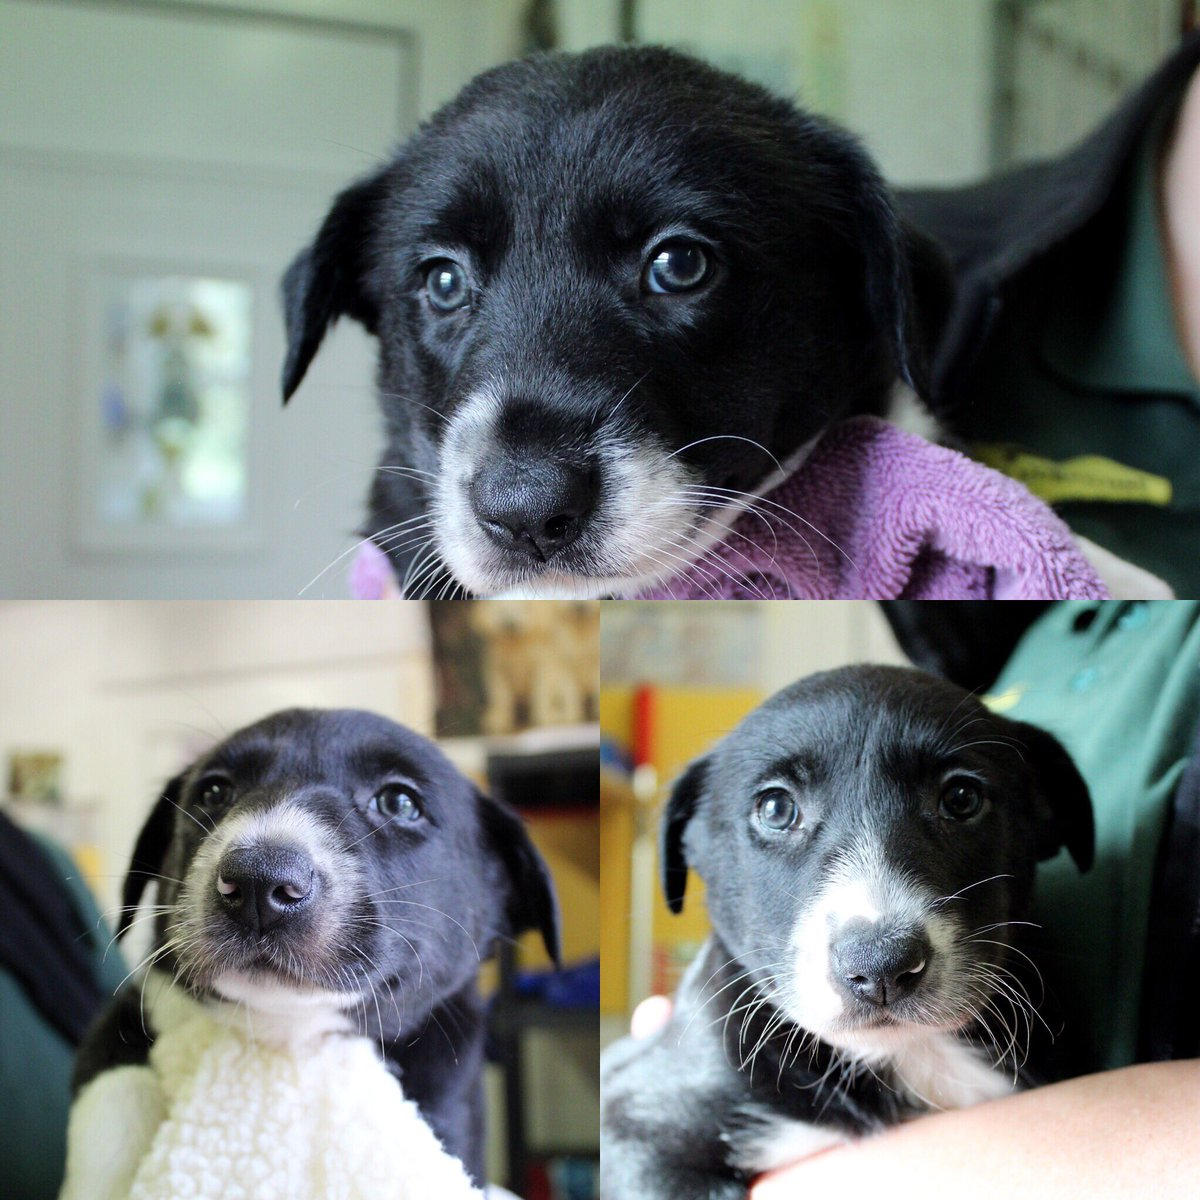 💛 Jay, Jinx & Jemma 💛 here to brighten your Wednesday 😍 these beautiful girls are nearly ready to find their special homes 🏡 #adifl #AdoptDontShop #puppylove #cute #bordercollie @DogsTrust